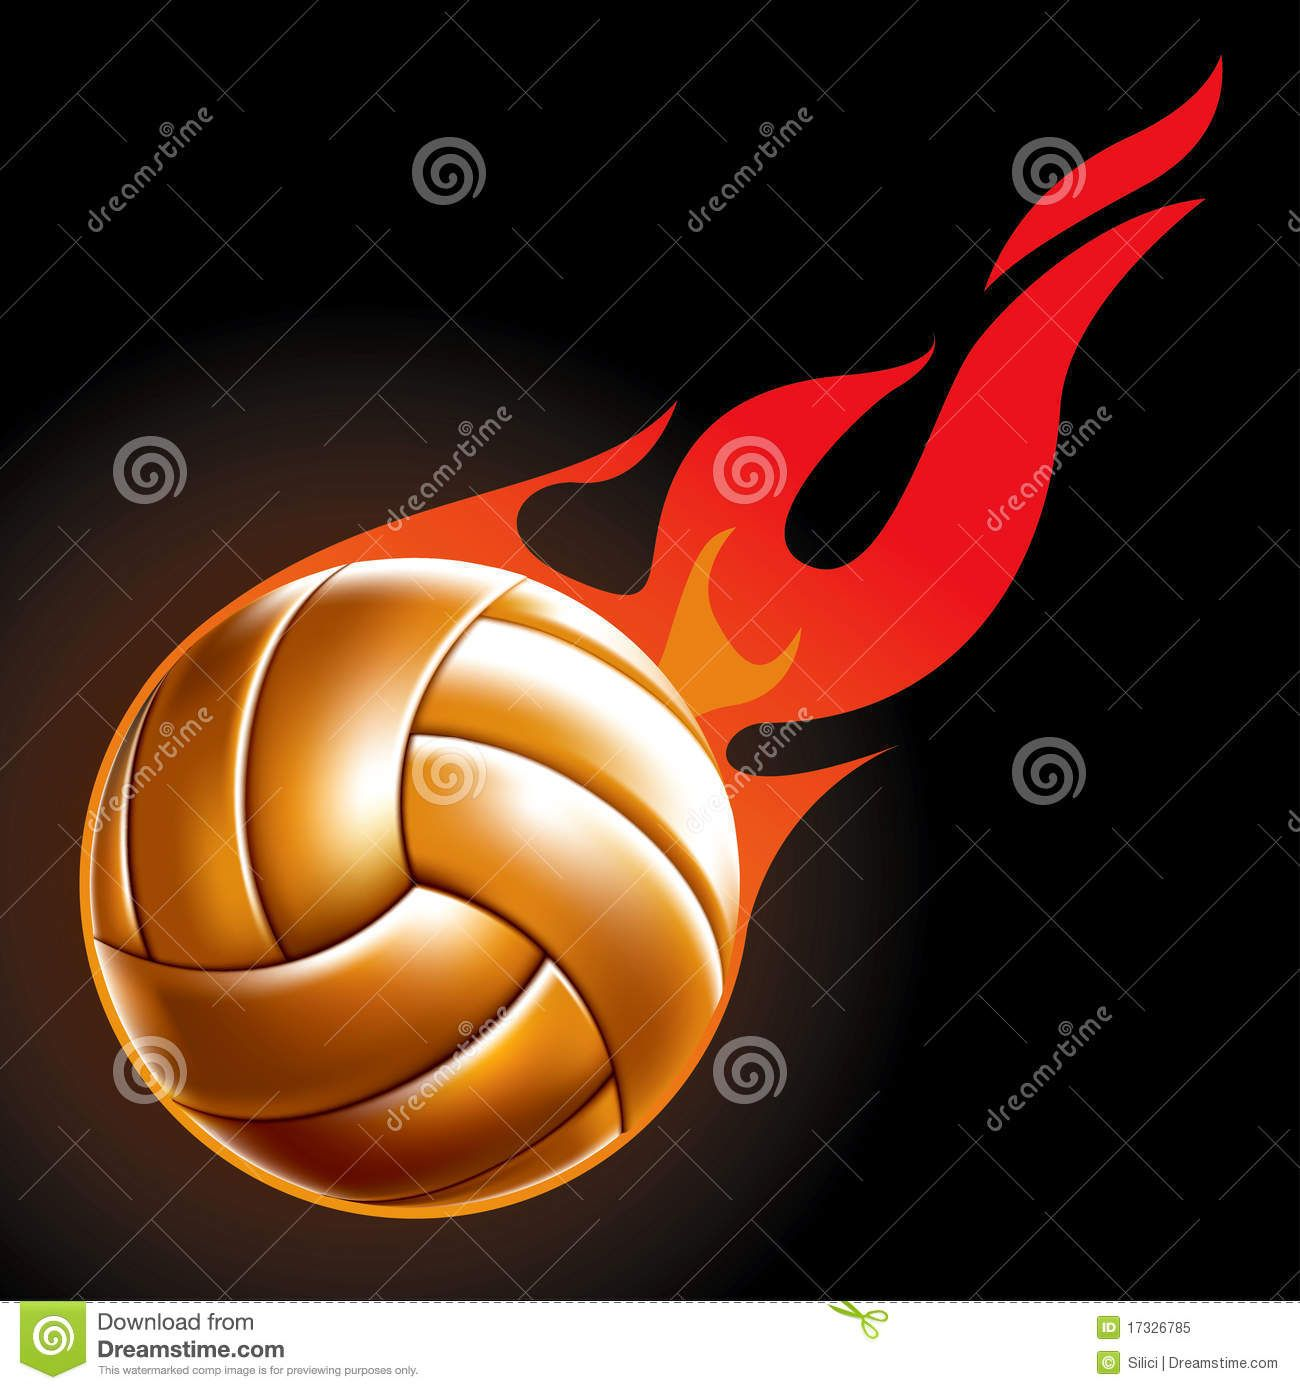 Volleyball Ball Google Search Volleyball Ball Drawing Ball